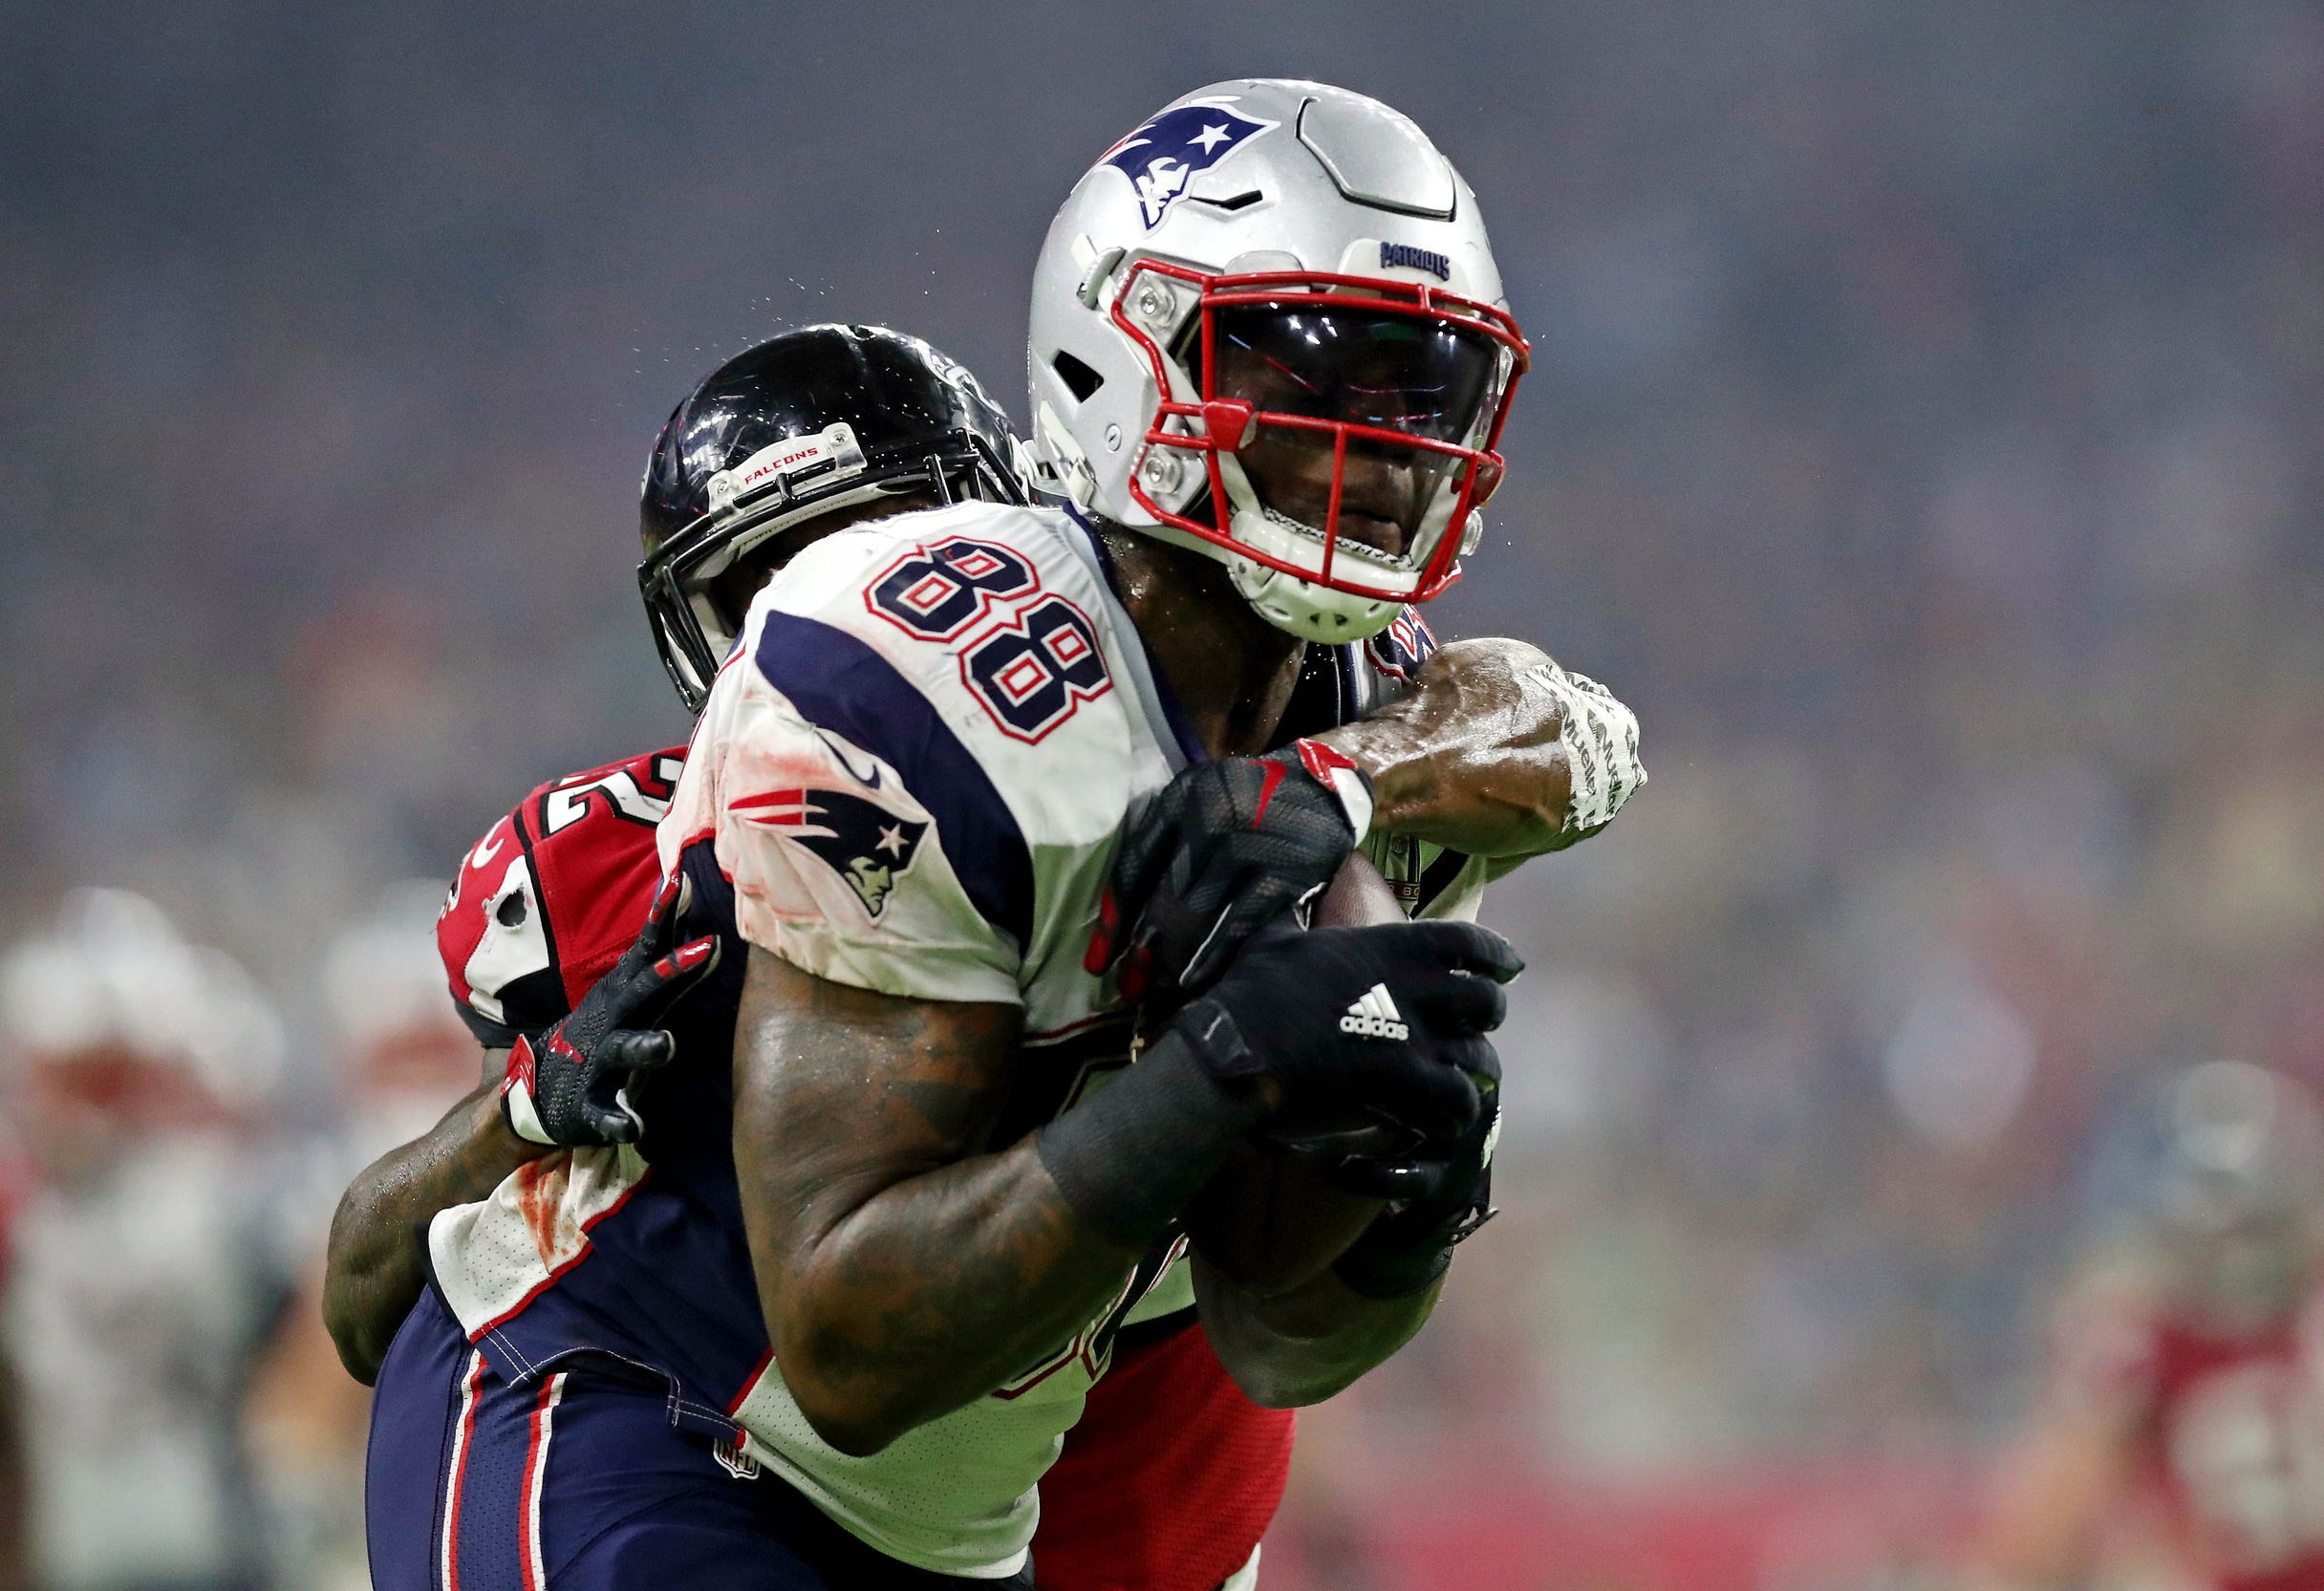 Former Texas A&M tight end Martellus Bennett signs with Packers